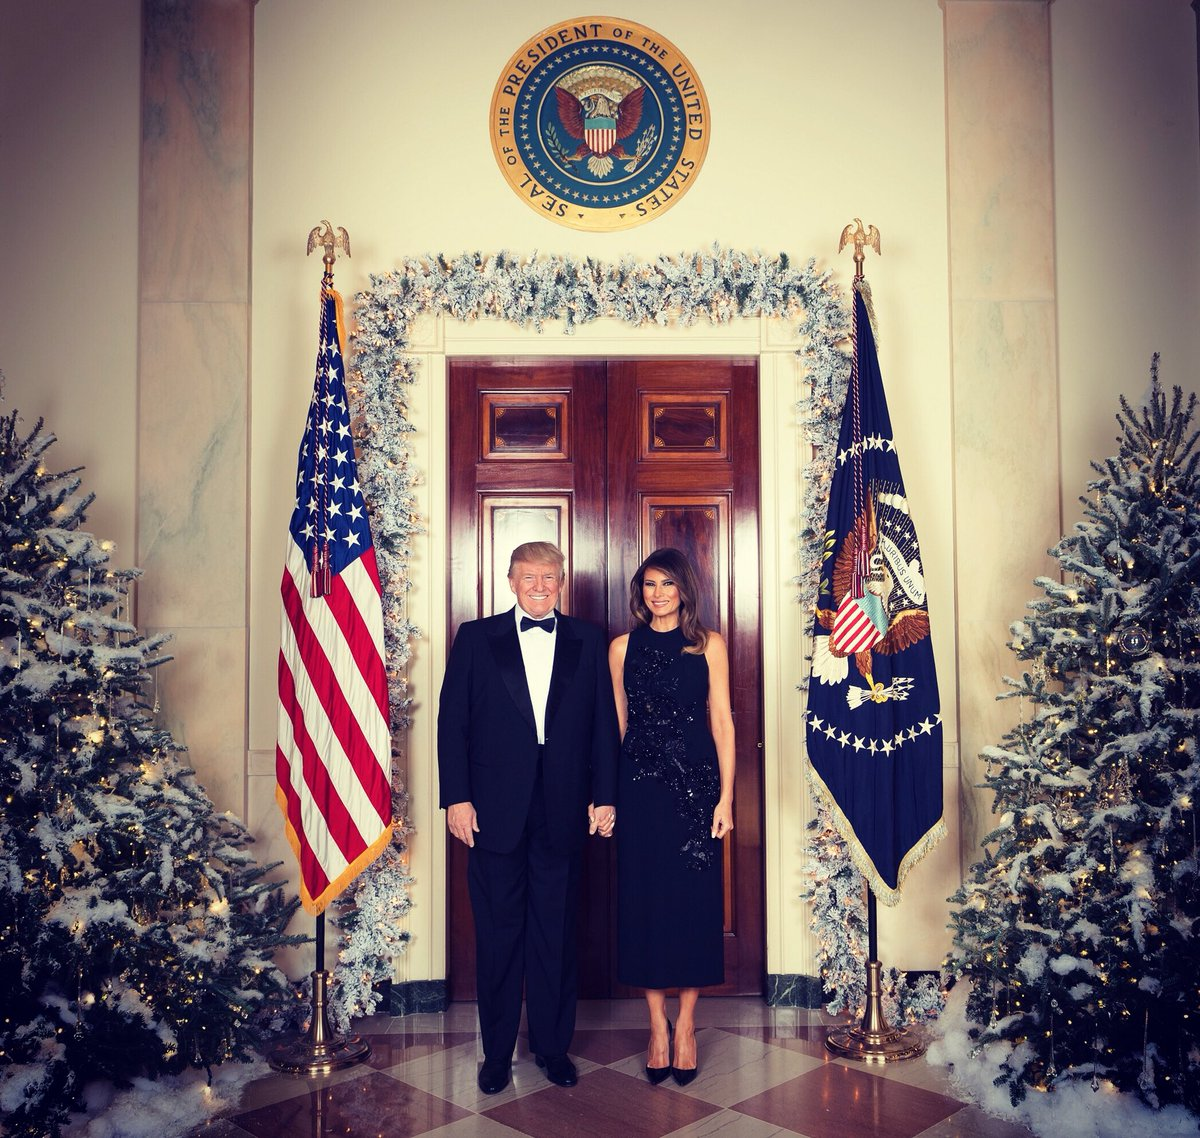 Merry Christmas from President Donald J. Trump and First Lady Melania Trump. @POTUS & @FLOTUS  are seen Tuesday, December 5, in their official 2017 Christmas portrait, in the Cross Hall of the White House in Washington, D.C. (Official White House Photo by Andrea Hanks)